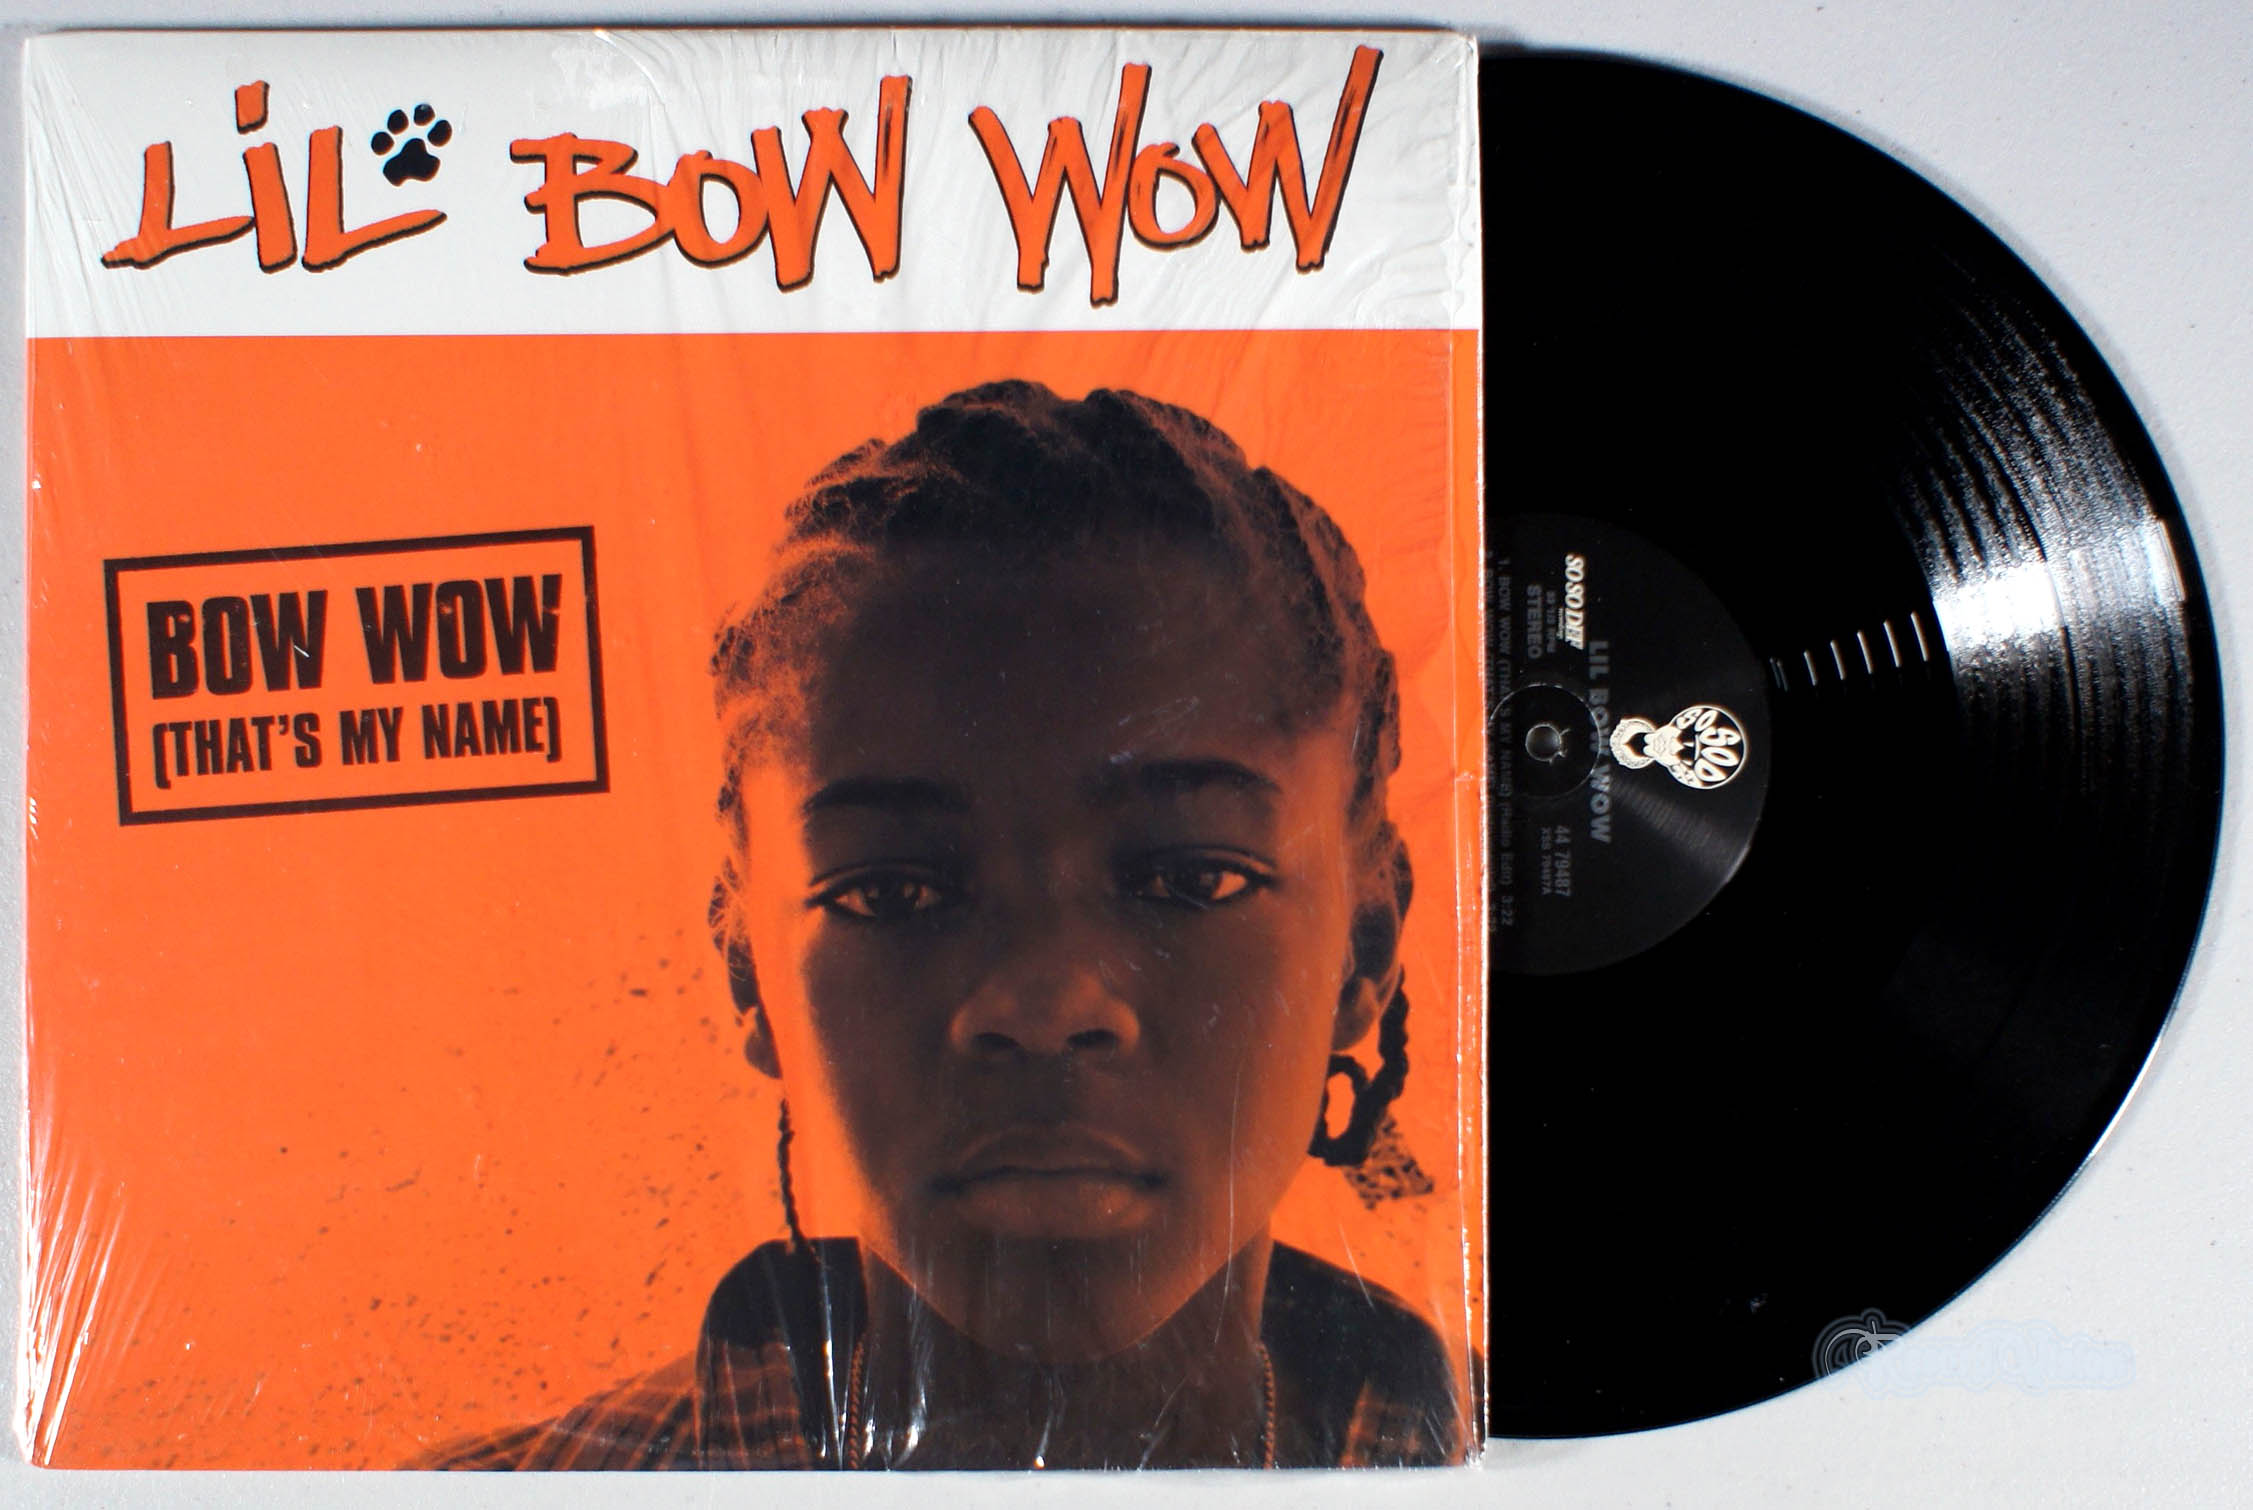 LIL BOW WOW - Bow Wow (That's My Name) - 12 inch x 1